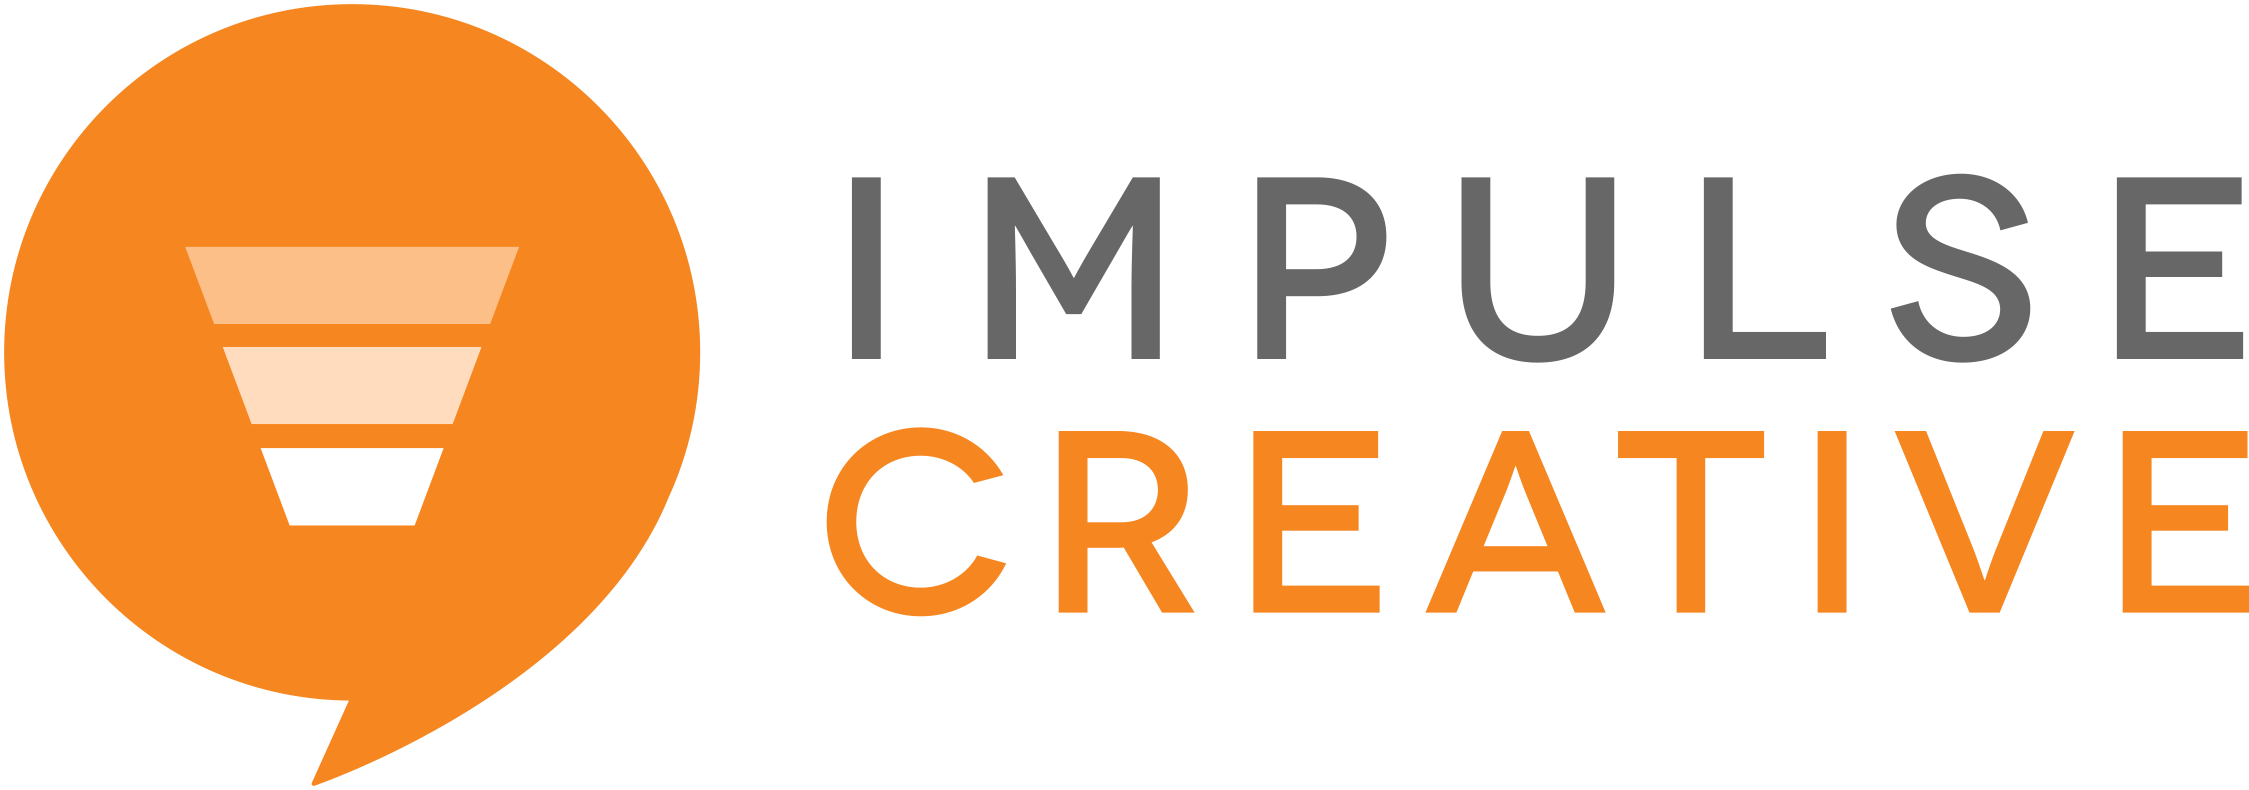 Impulse Creative - Inbound Marketing Agency